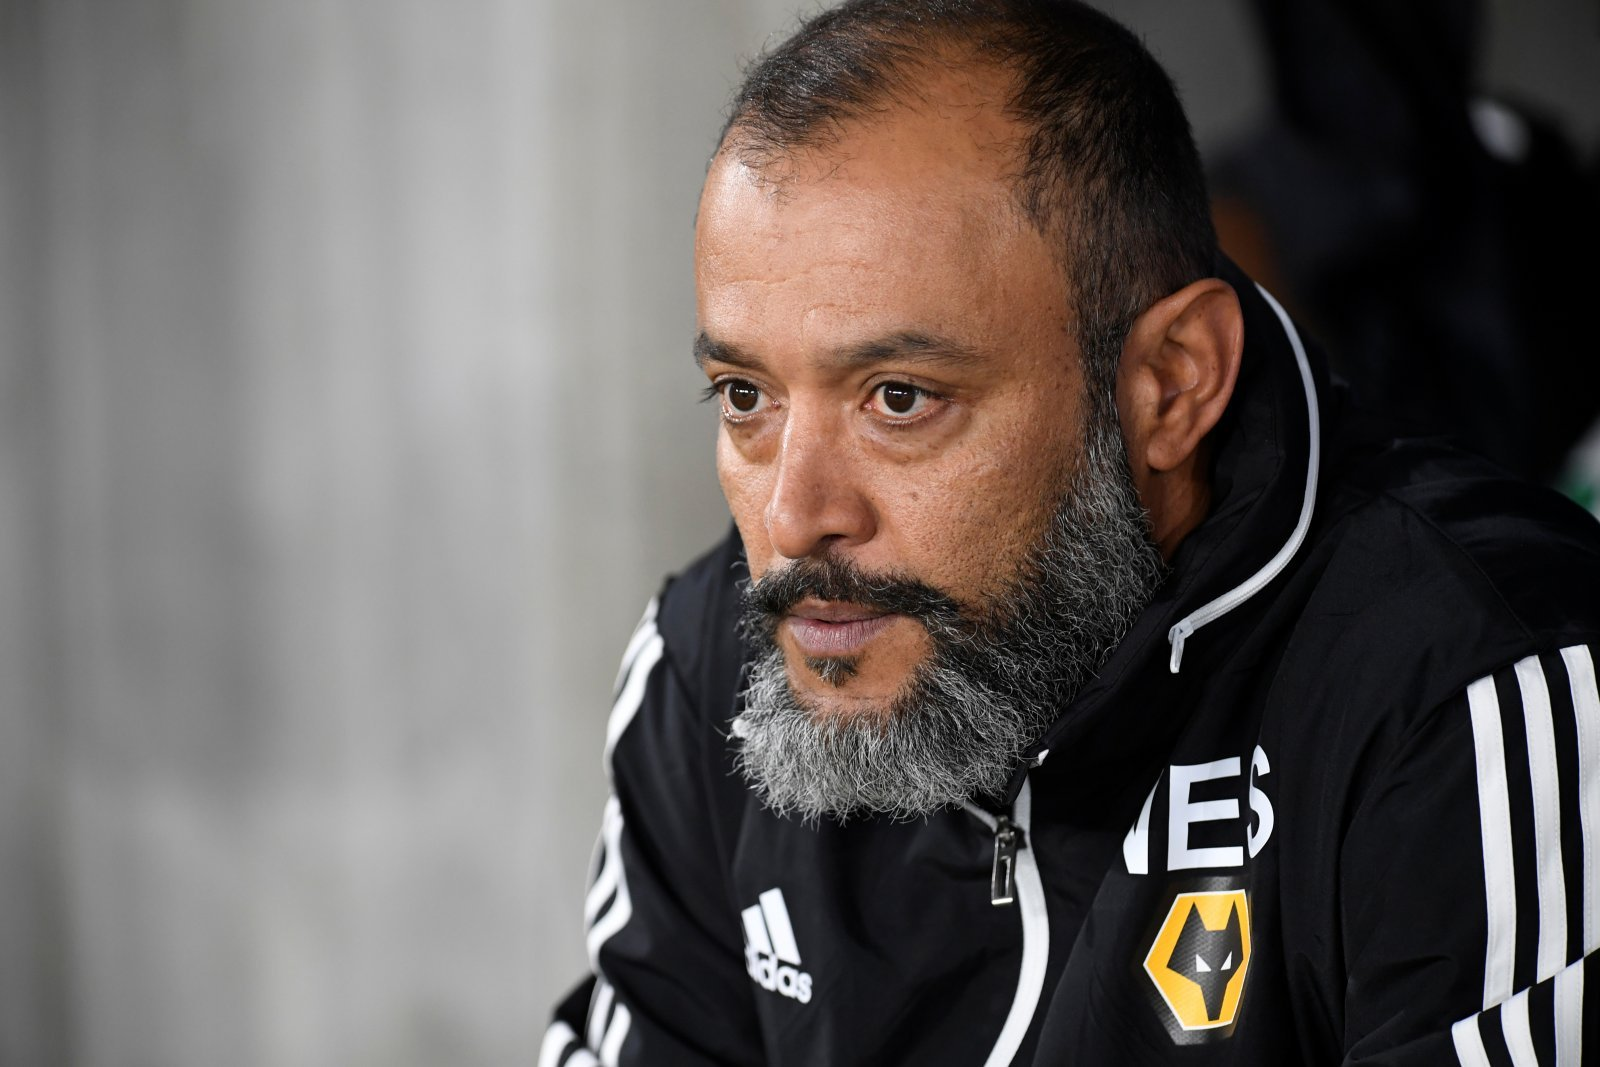 Wolves: Fans react angrily to VAR statistic